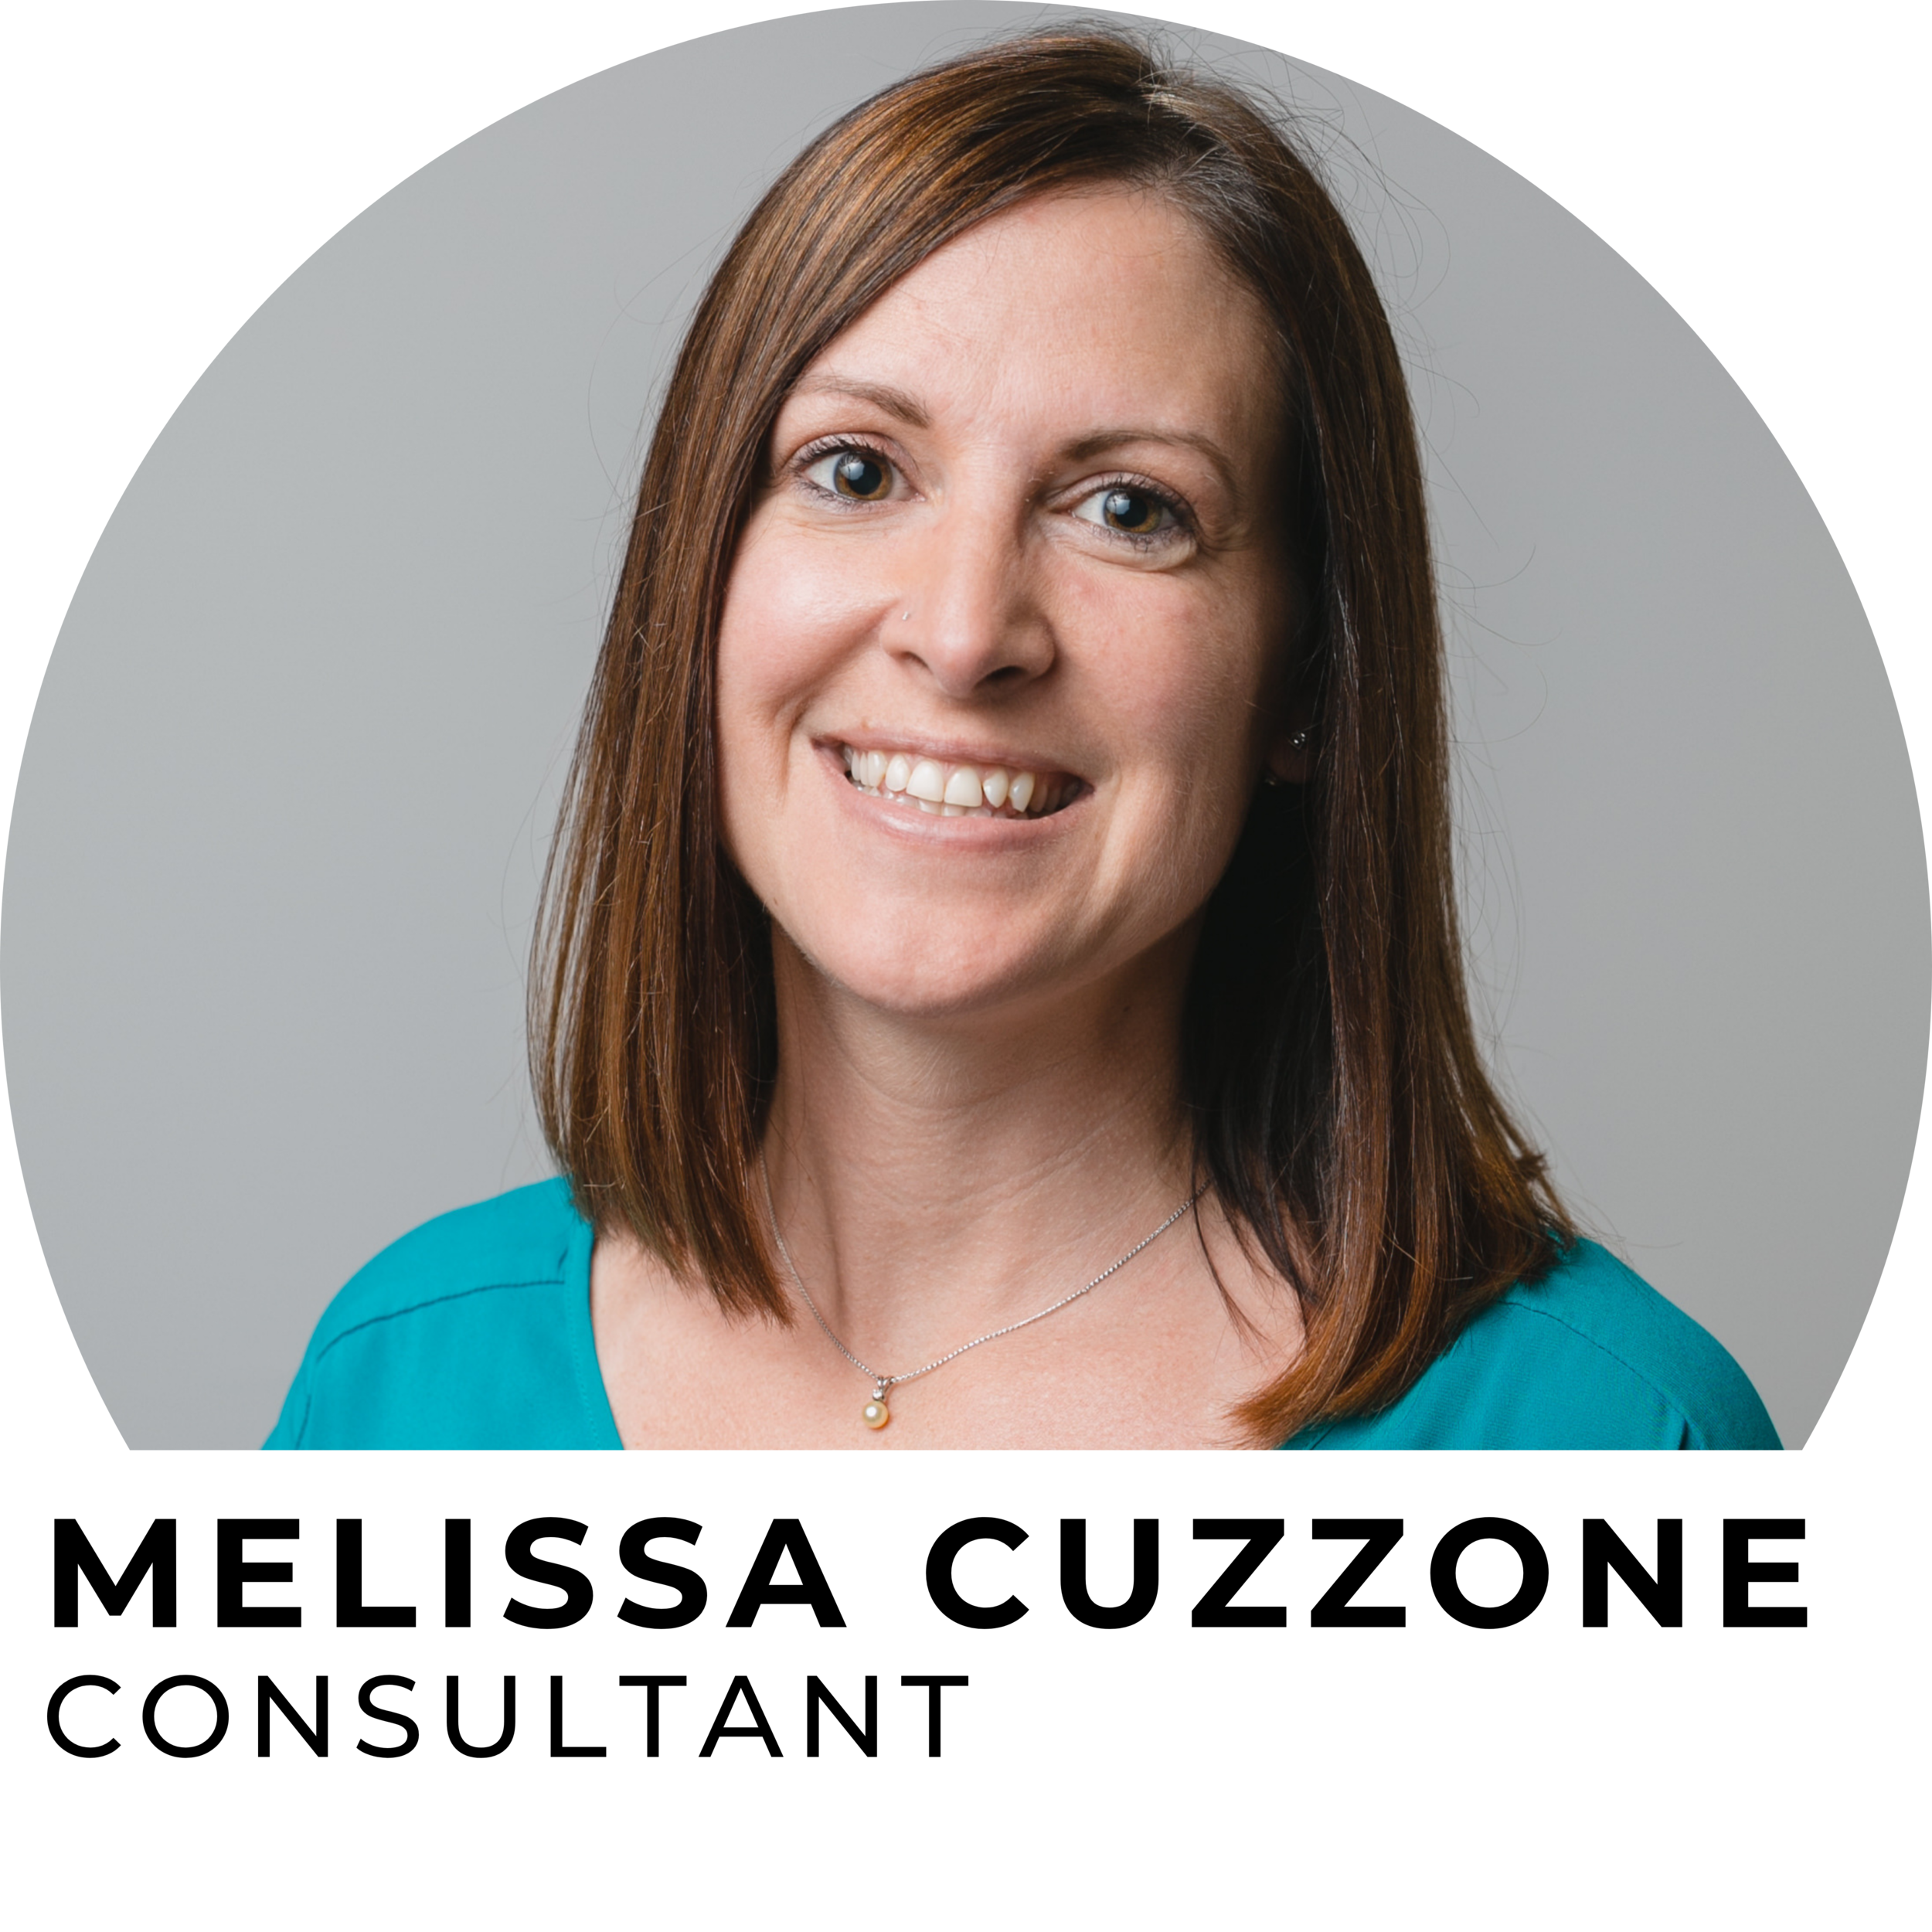 melissa cuzzone.png